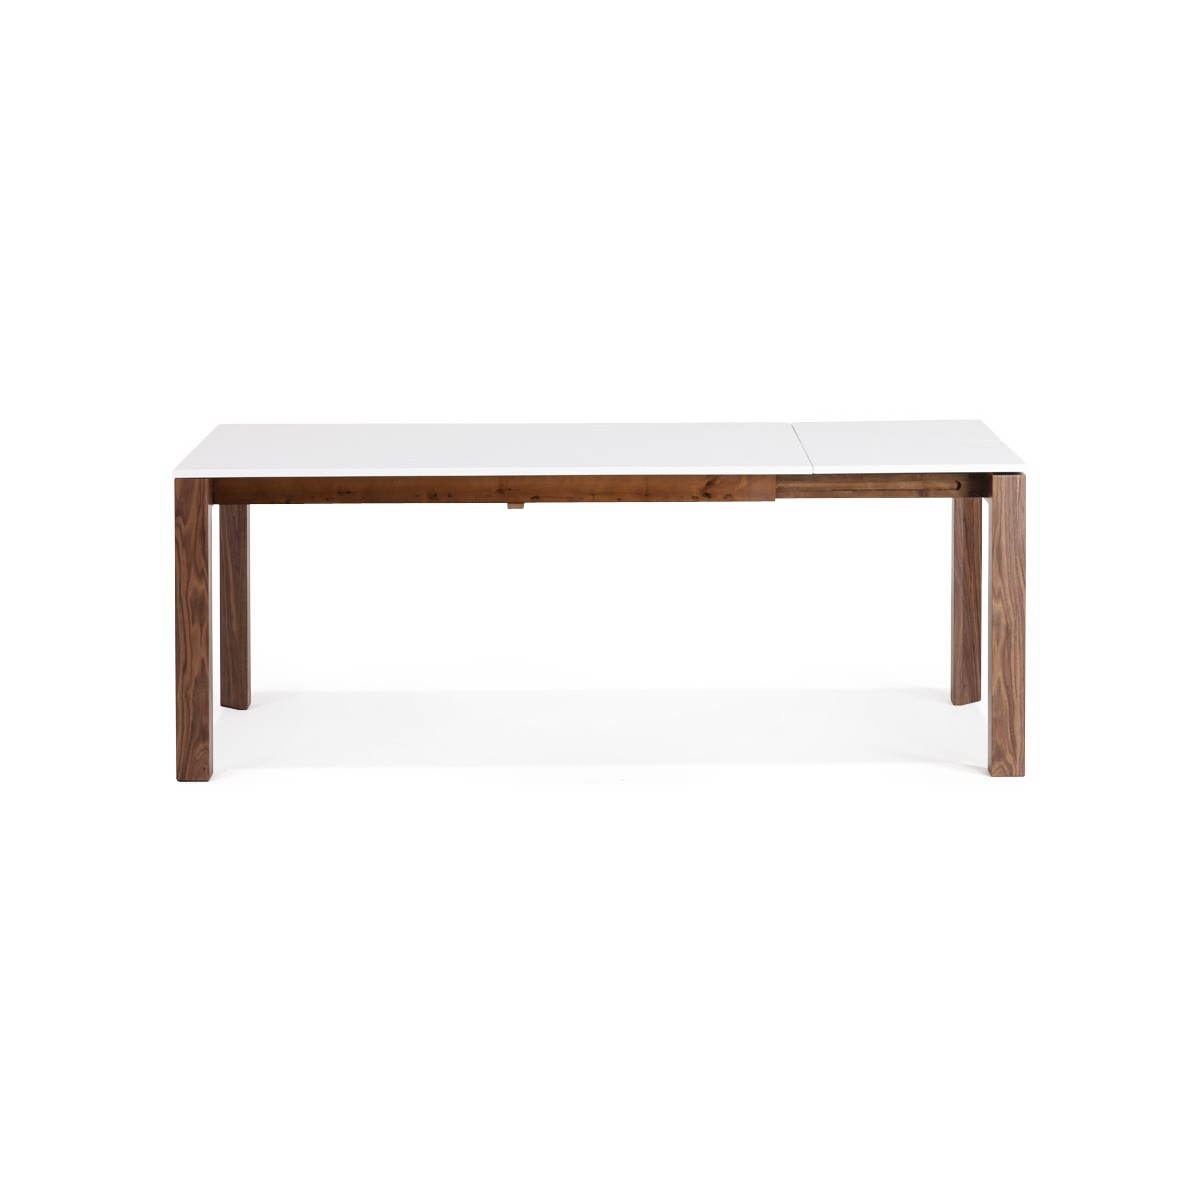 Table bois rallonge ikea for Ikea table rectangulaire